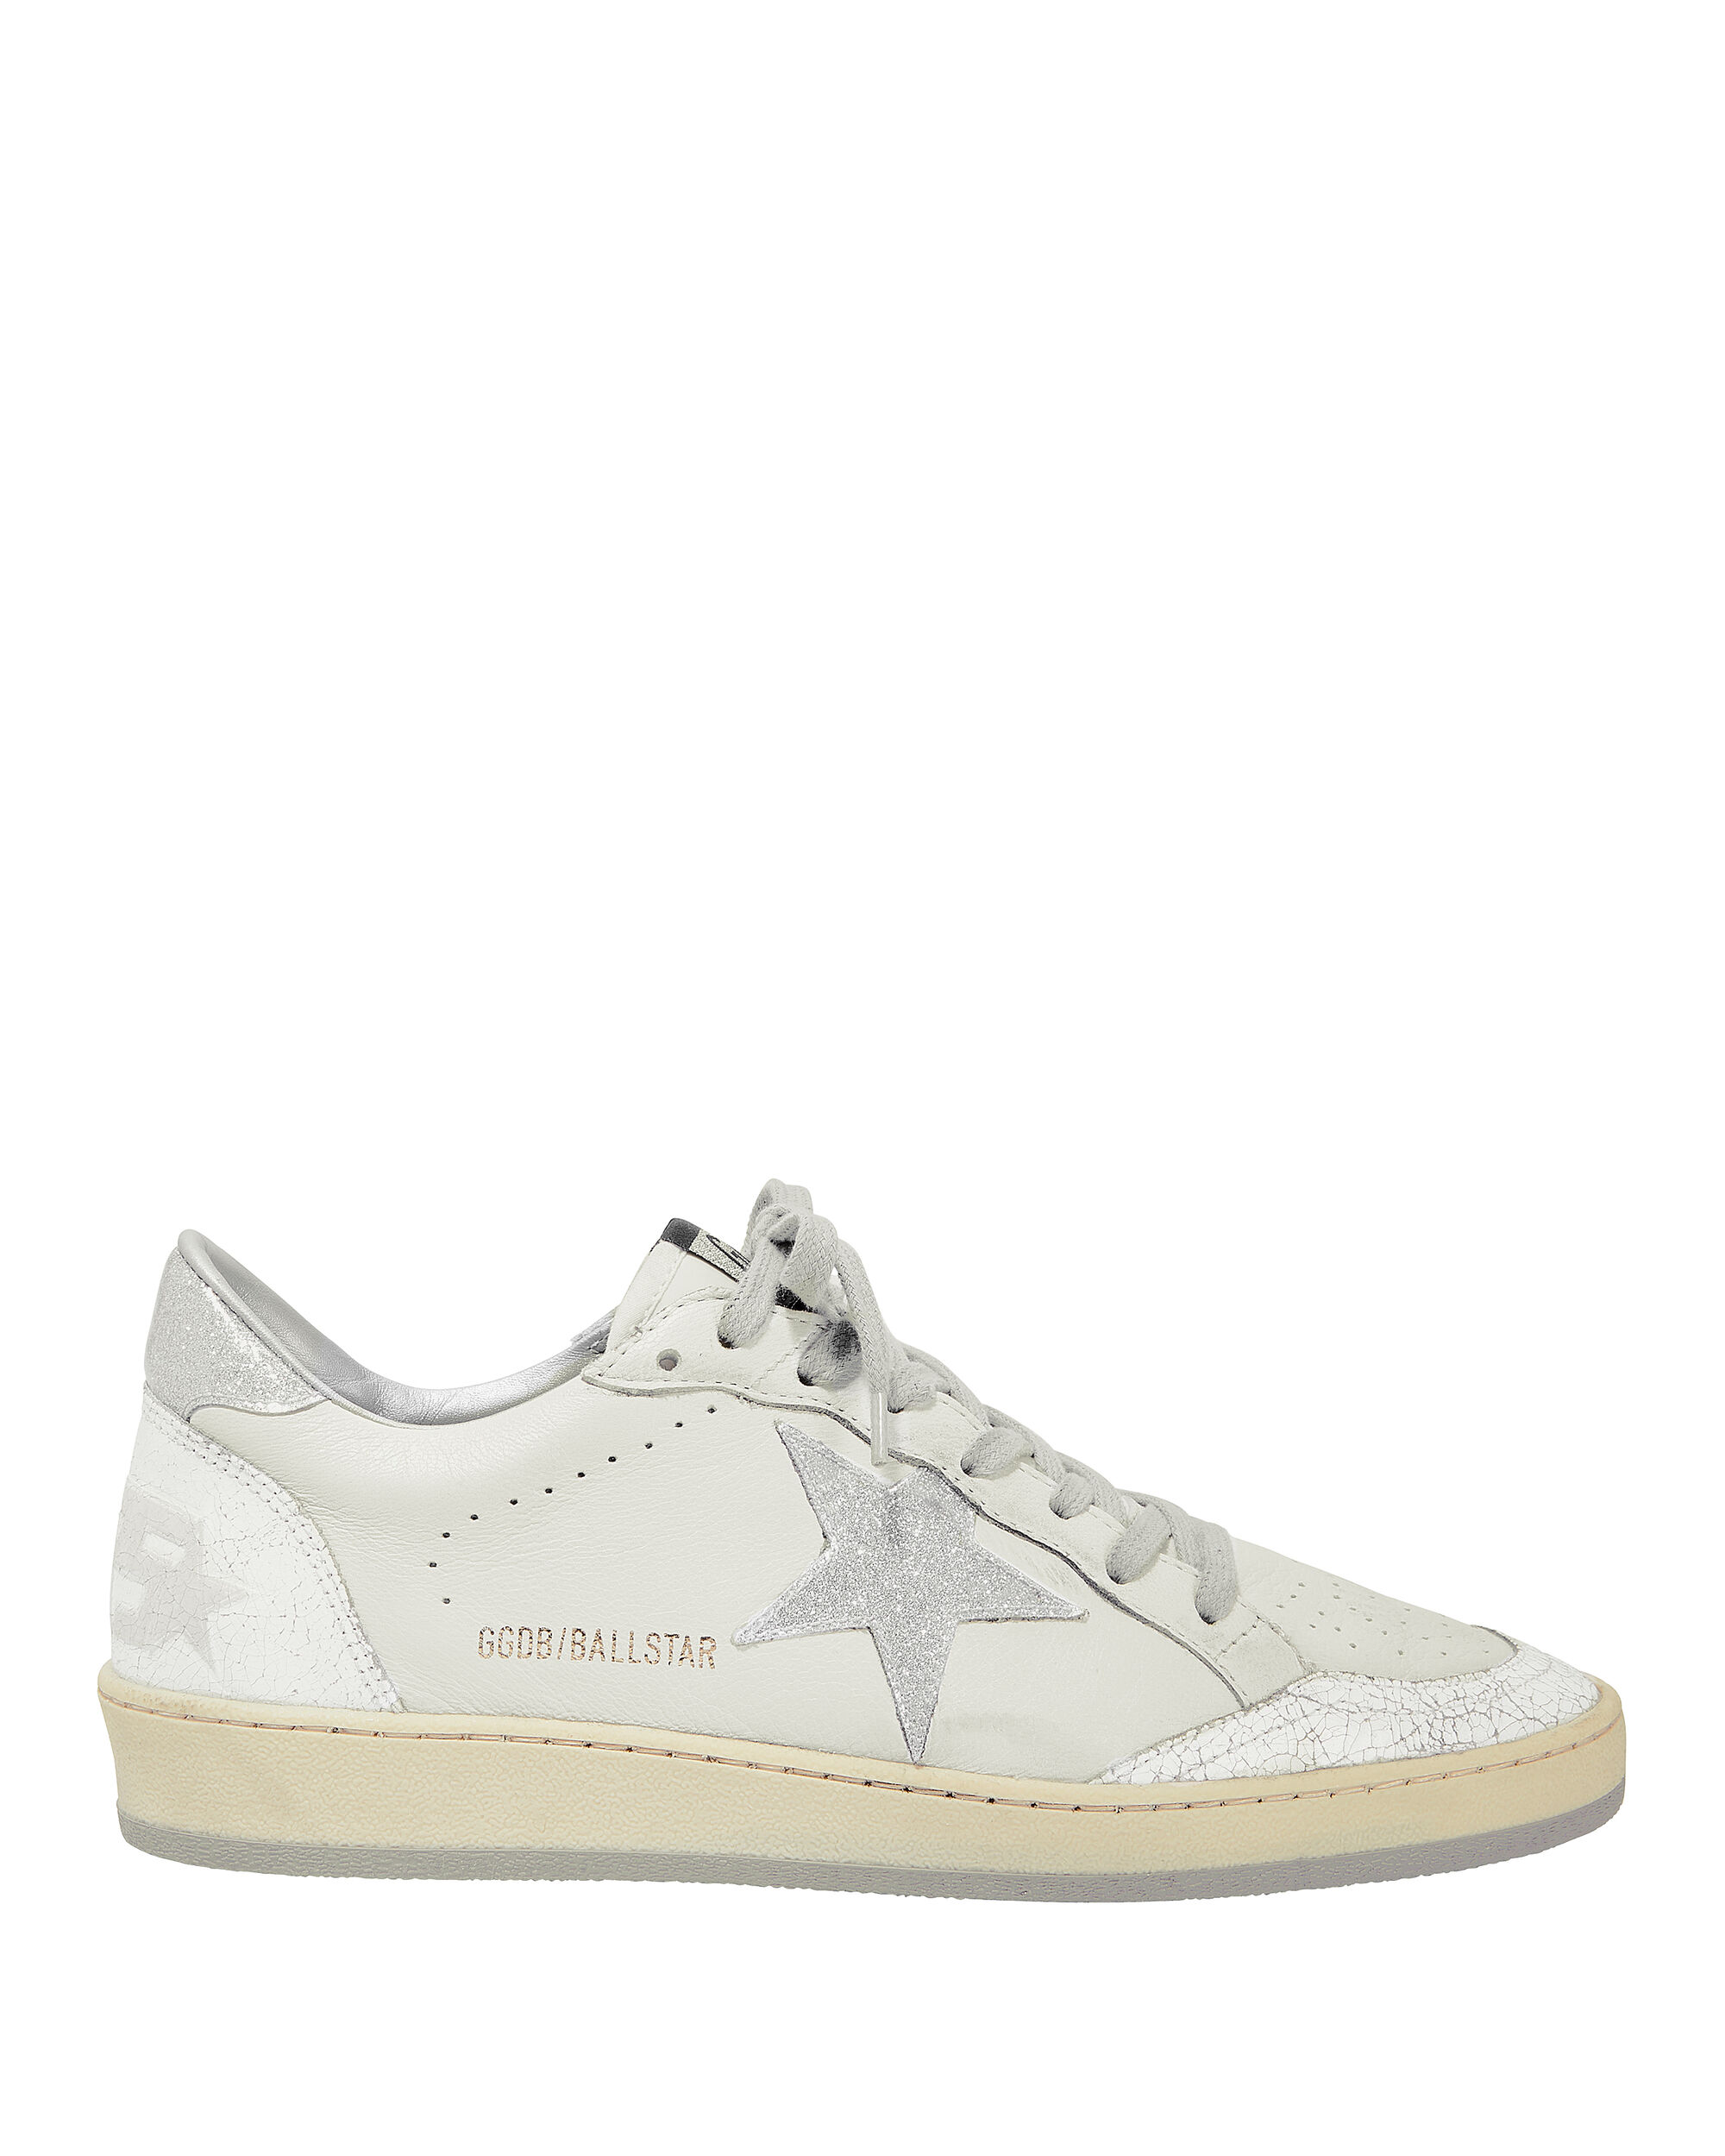 BALL STAR SILVER STAR LOW-TOP SNEAKERS WHITE